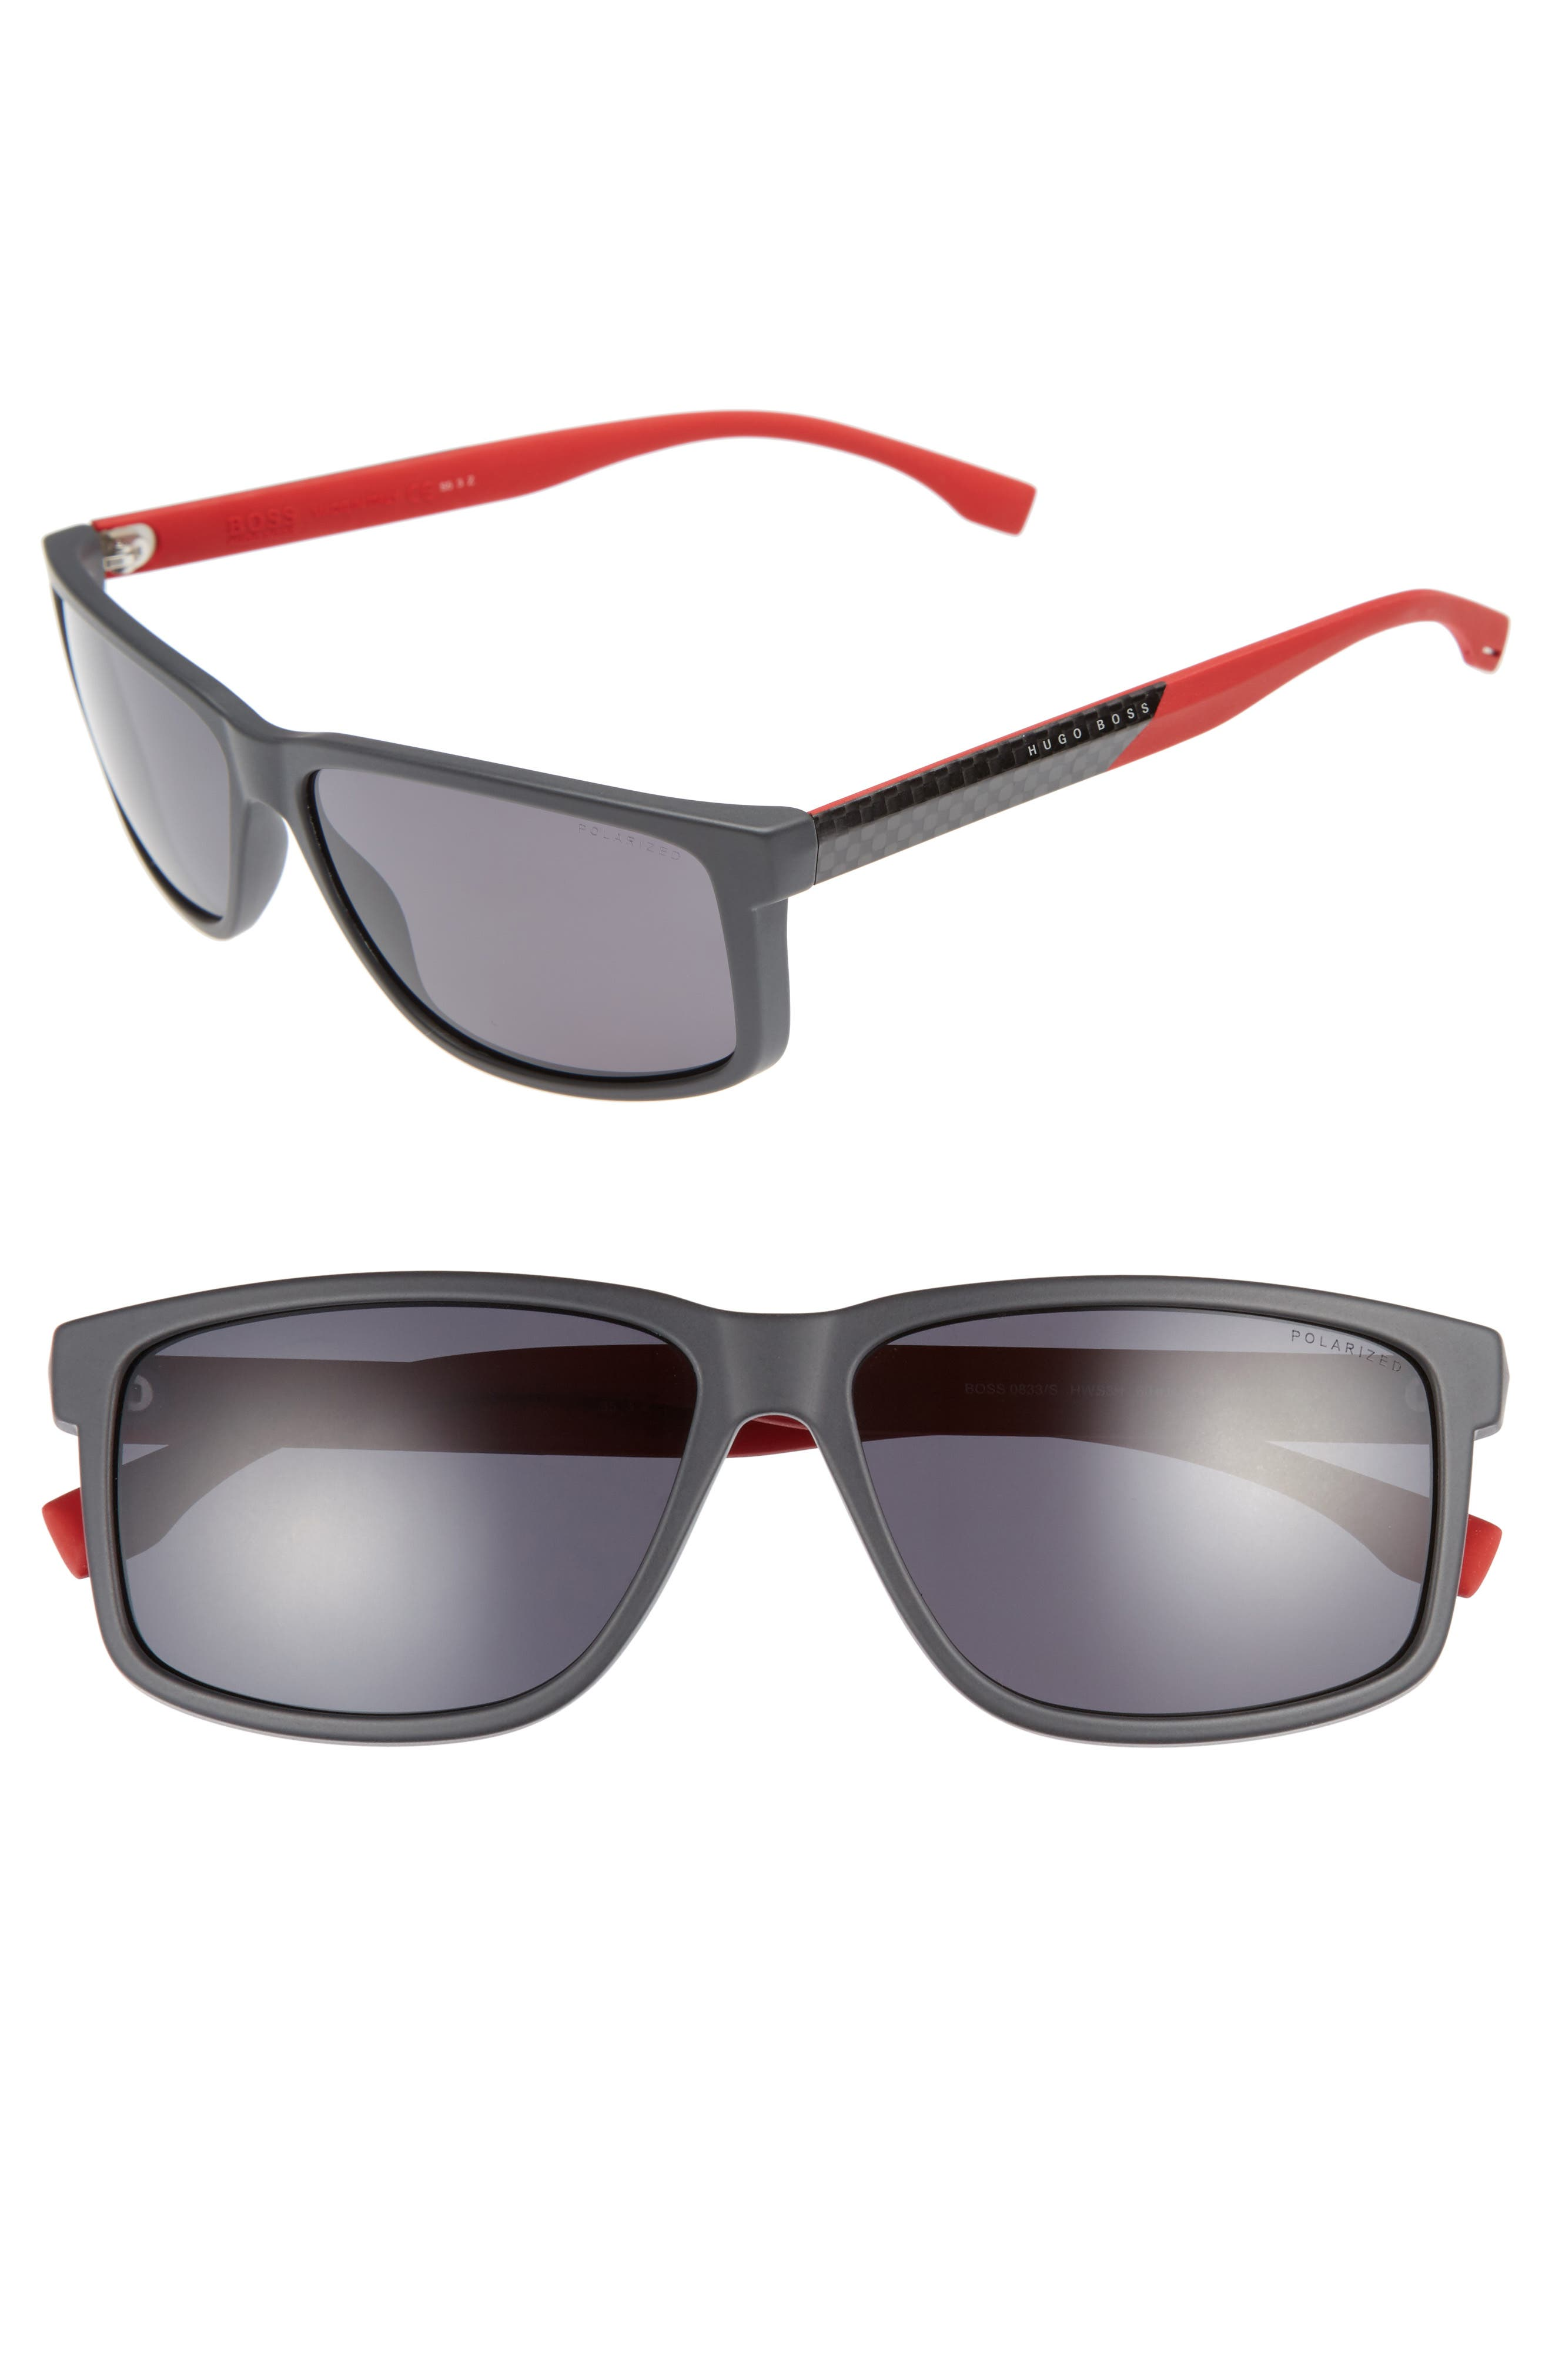 60mm Polarized Sunglasses,                         Main,                         color, Grey Carbon Red